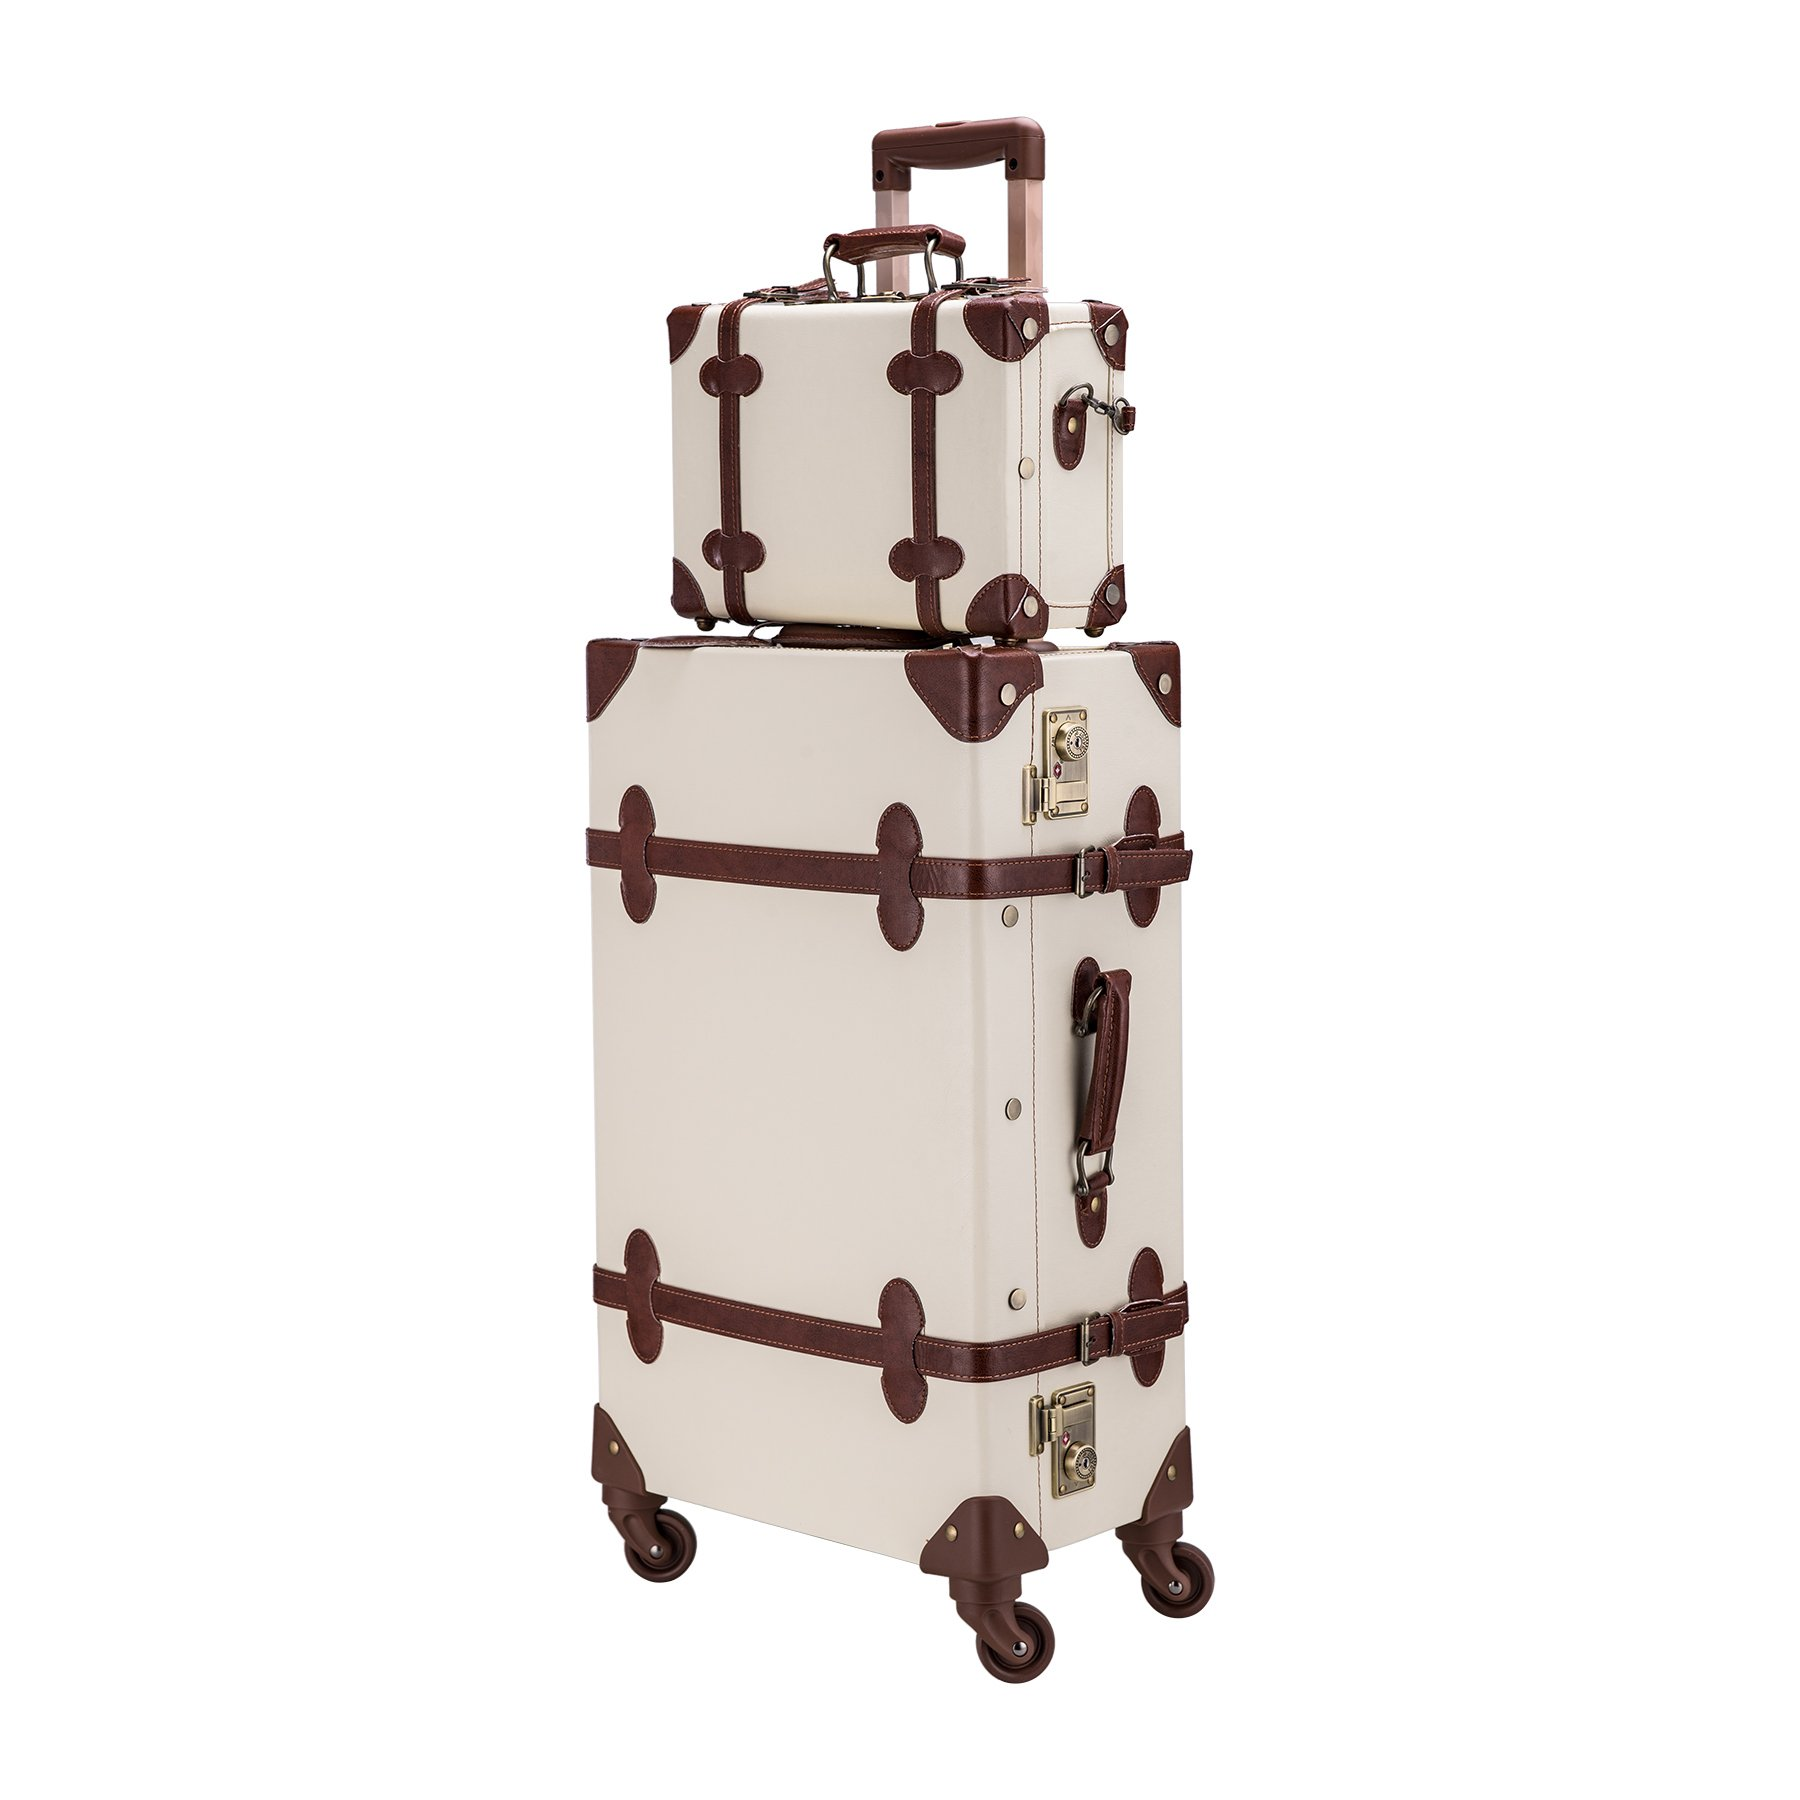 CO-Z Premium Vintage Luggage Sets 24'' Trolley Suitcase and 12'' Hand Bag Set with TSA Locks (Pink + Beige) (12'' +24'' White)